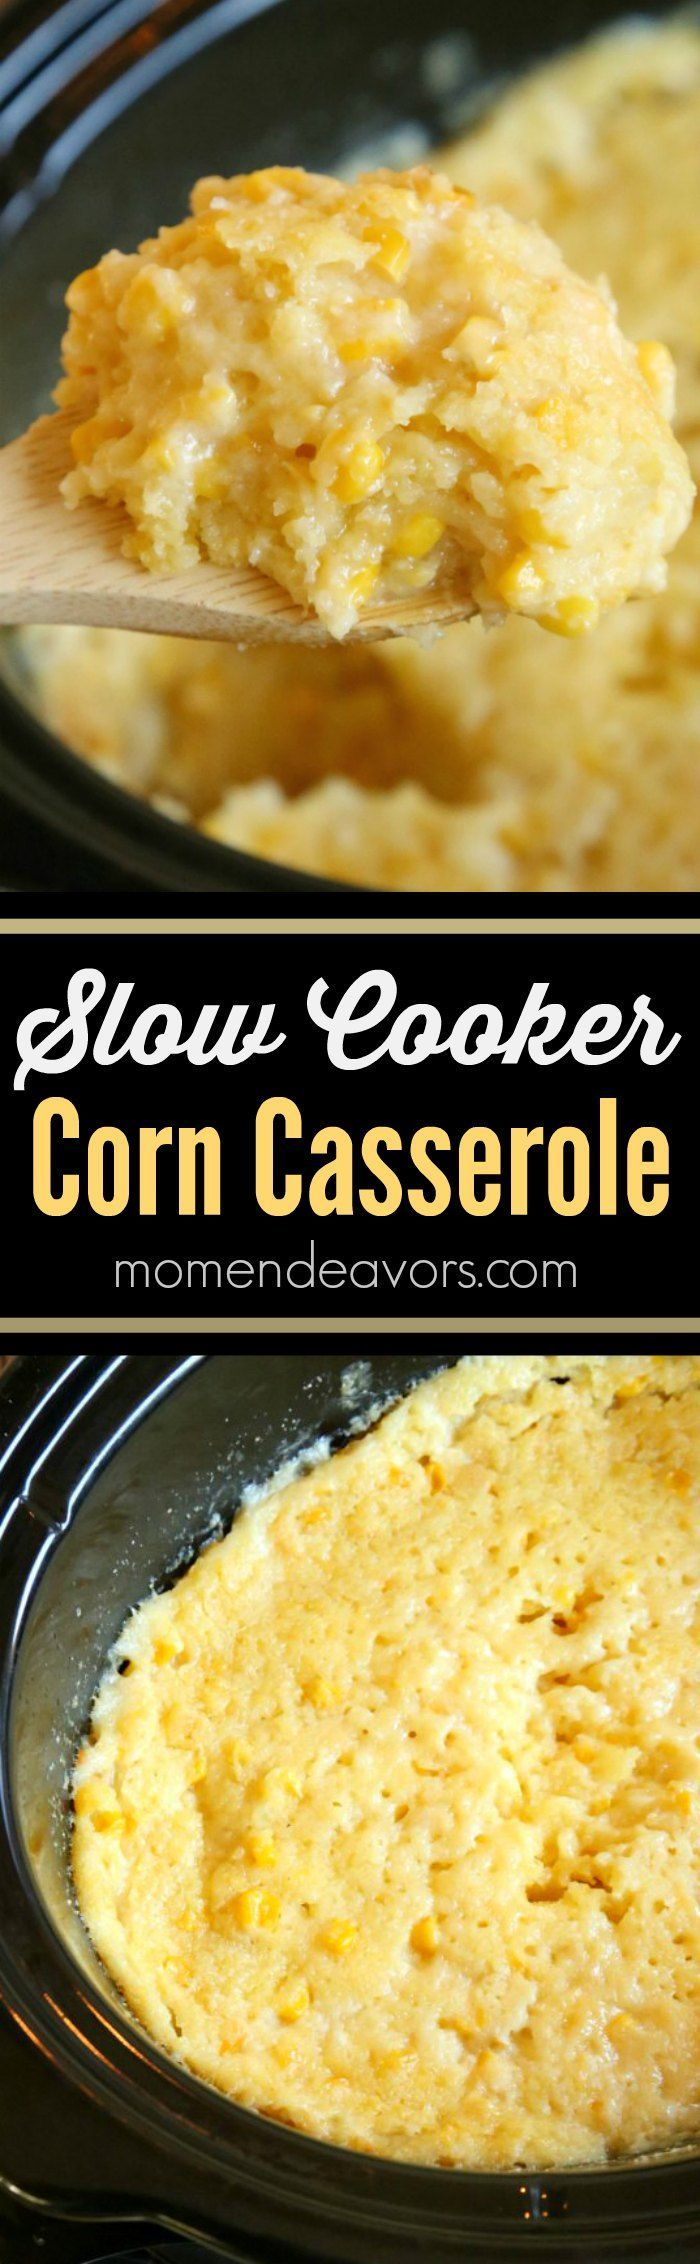 Slow Cooker Corn Casserole - a delicious, warm comfort food side dish